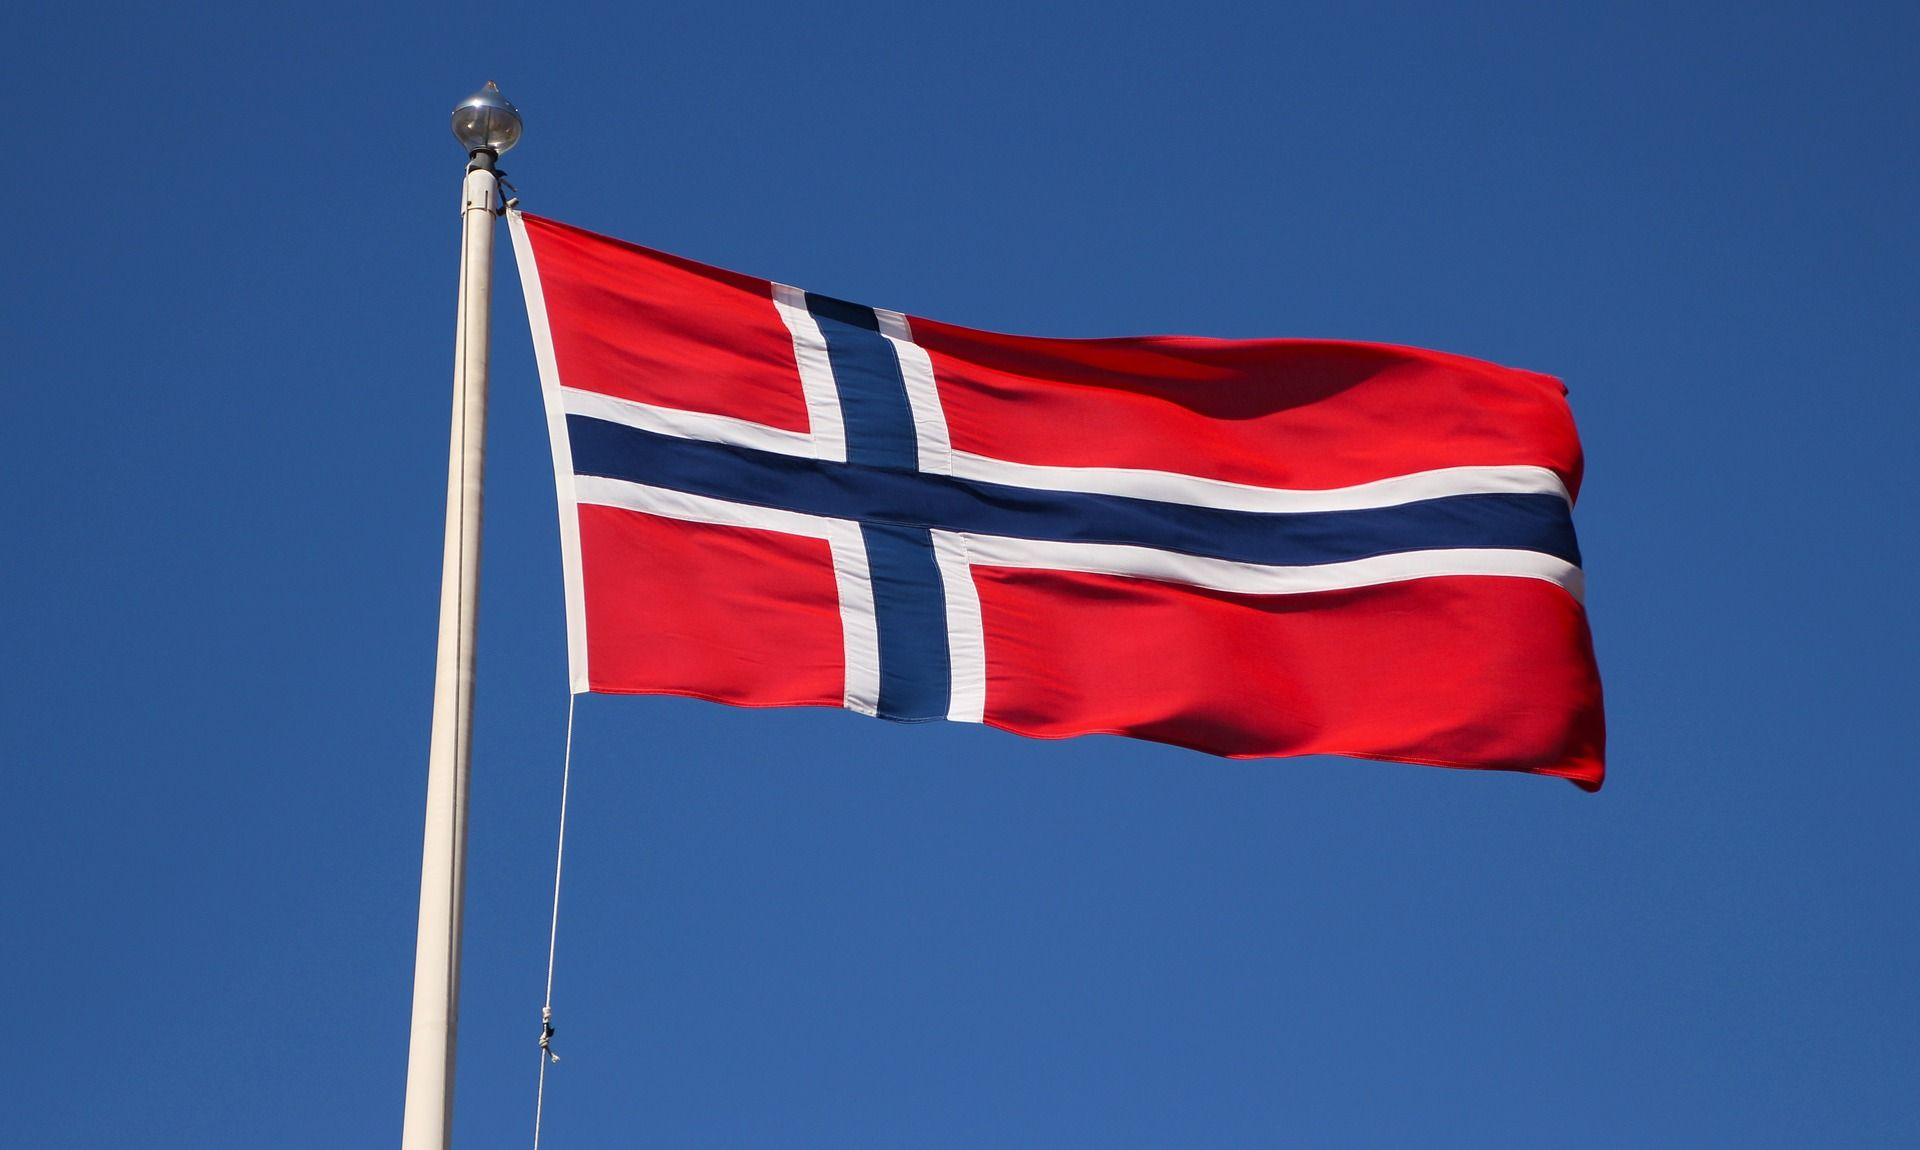 Norway Expats - Oil and Gas - Financial Advice